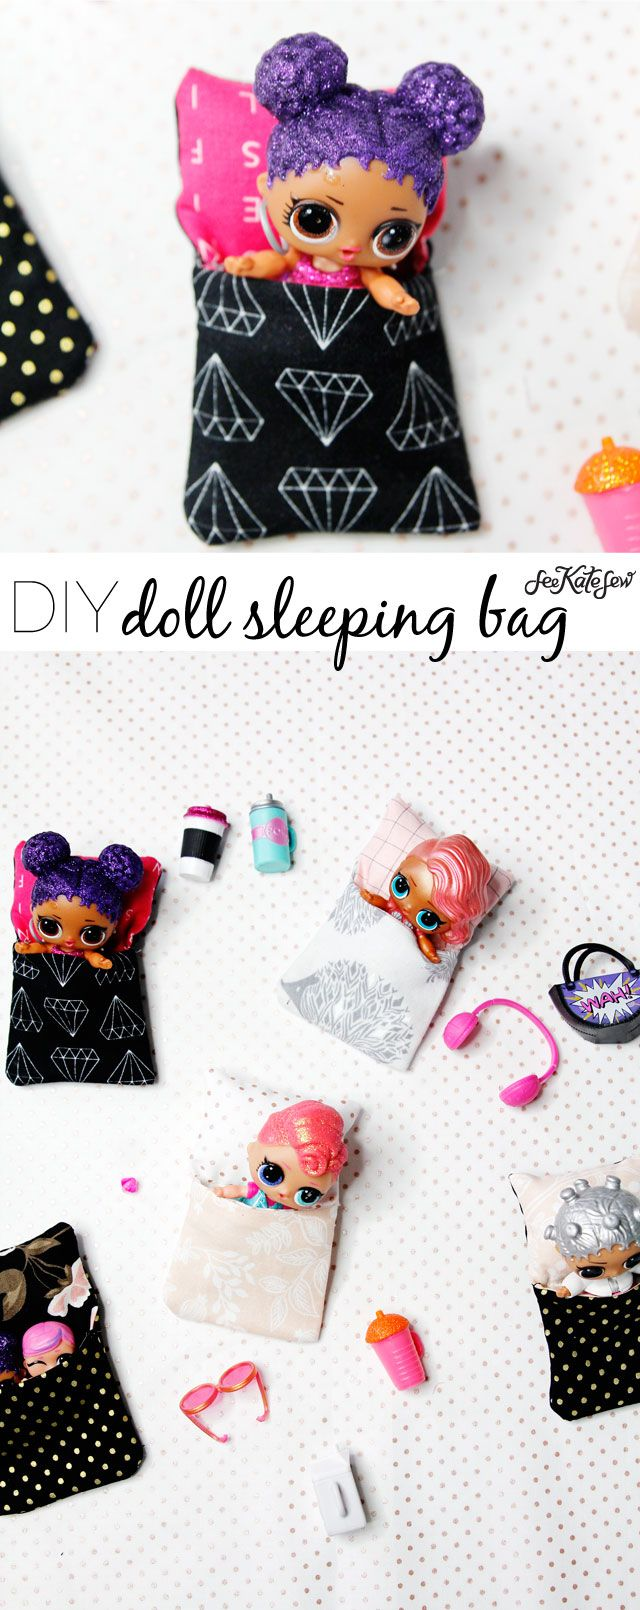 Little Doll Sleeping Bag Tutorial - see kate sew